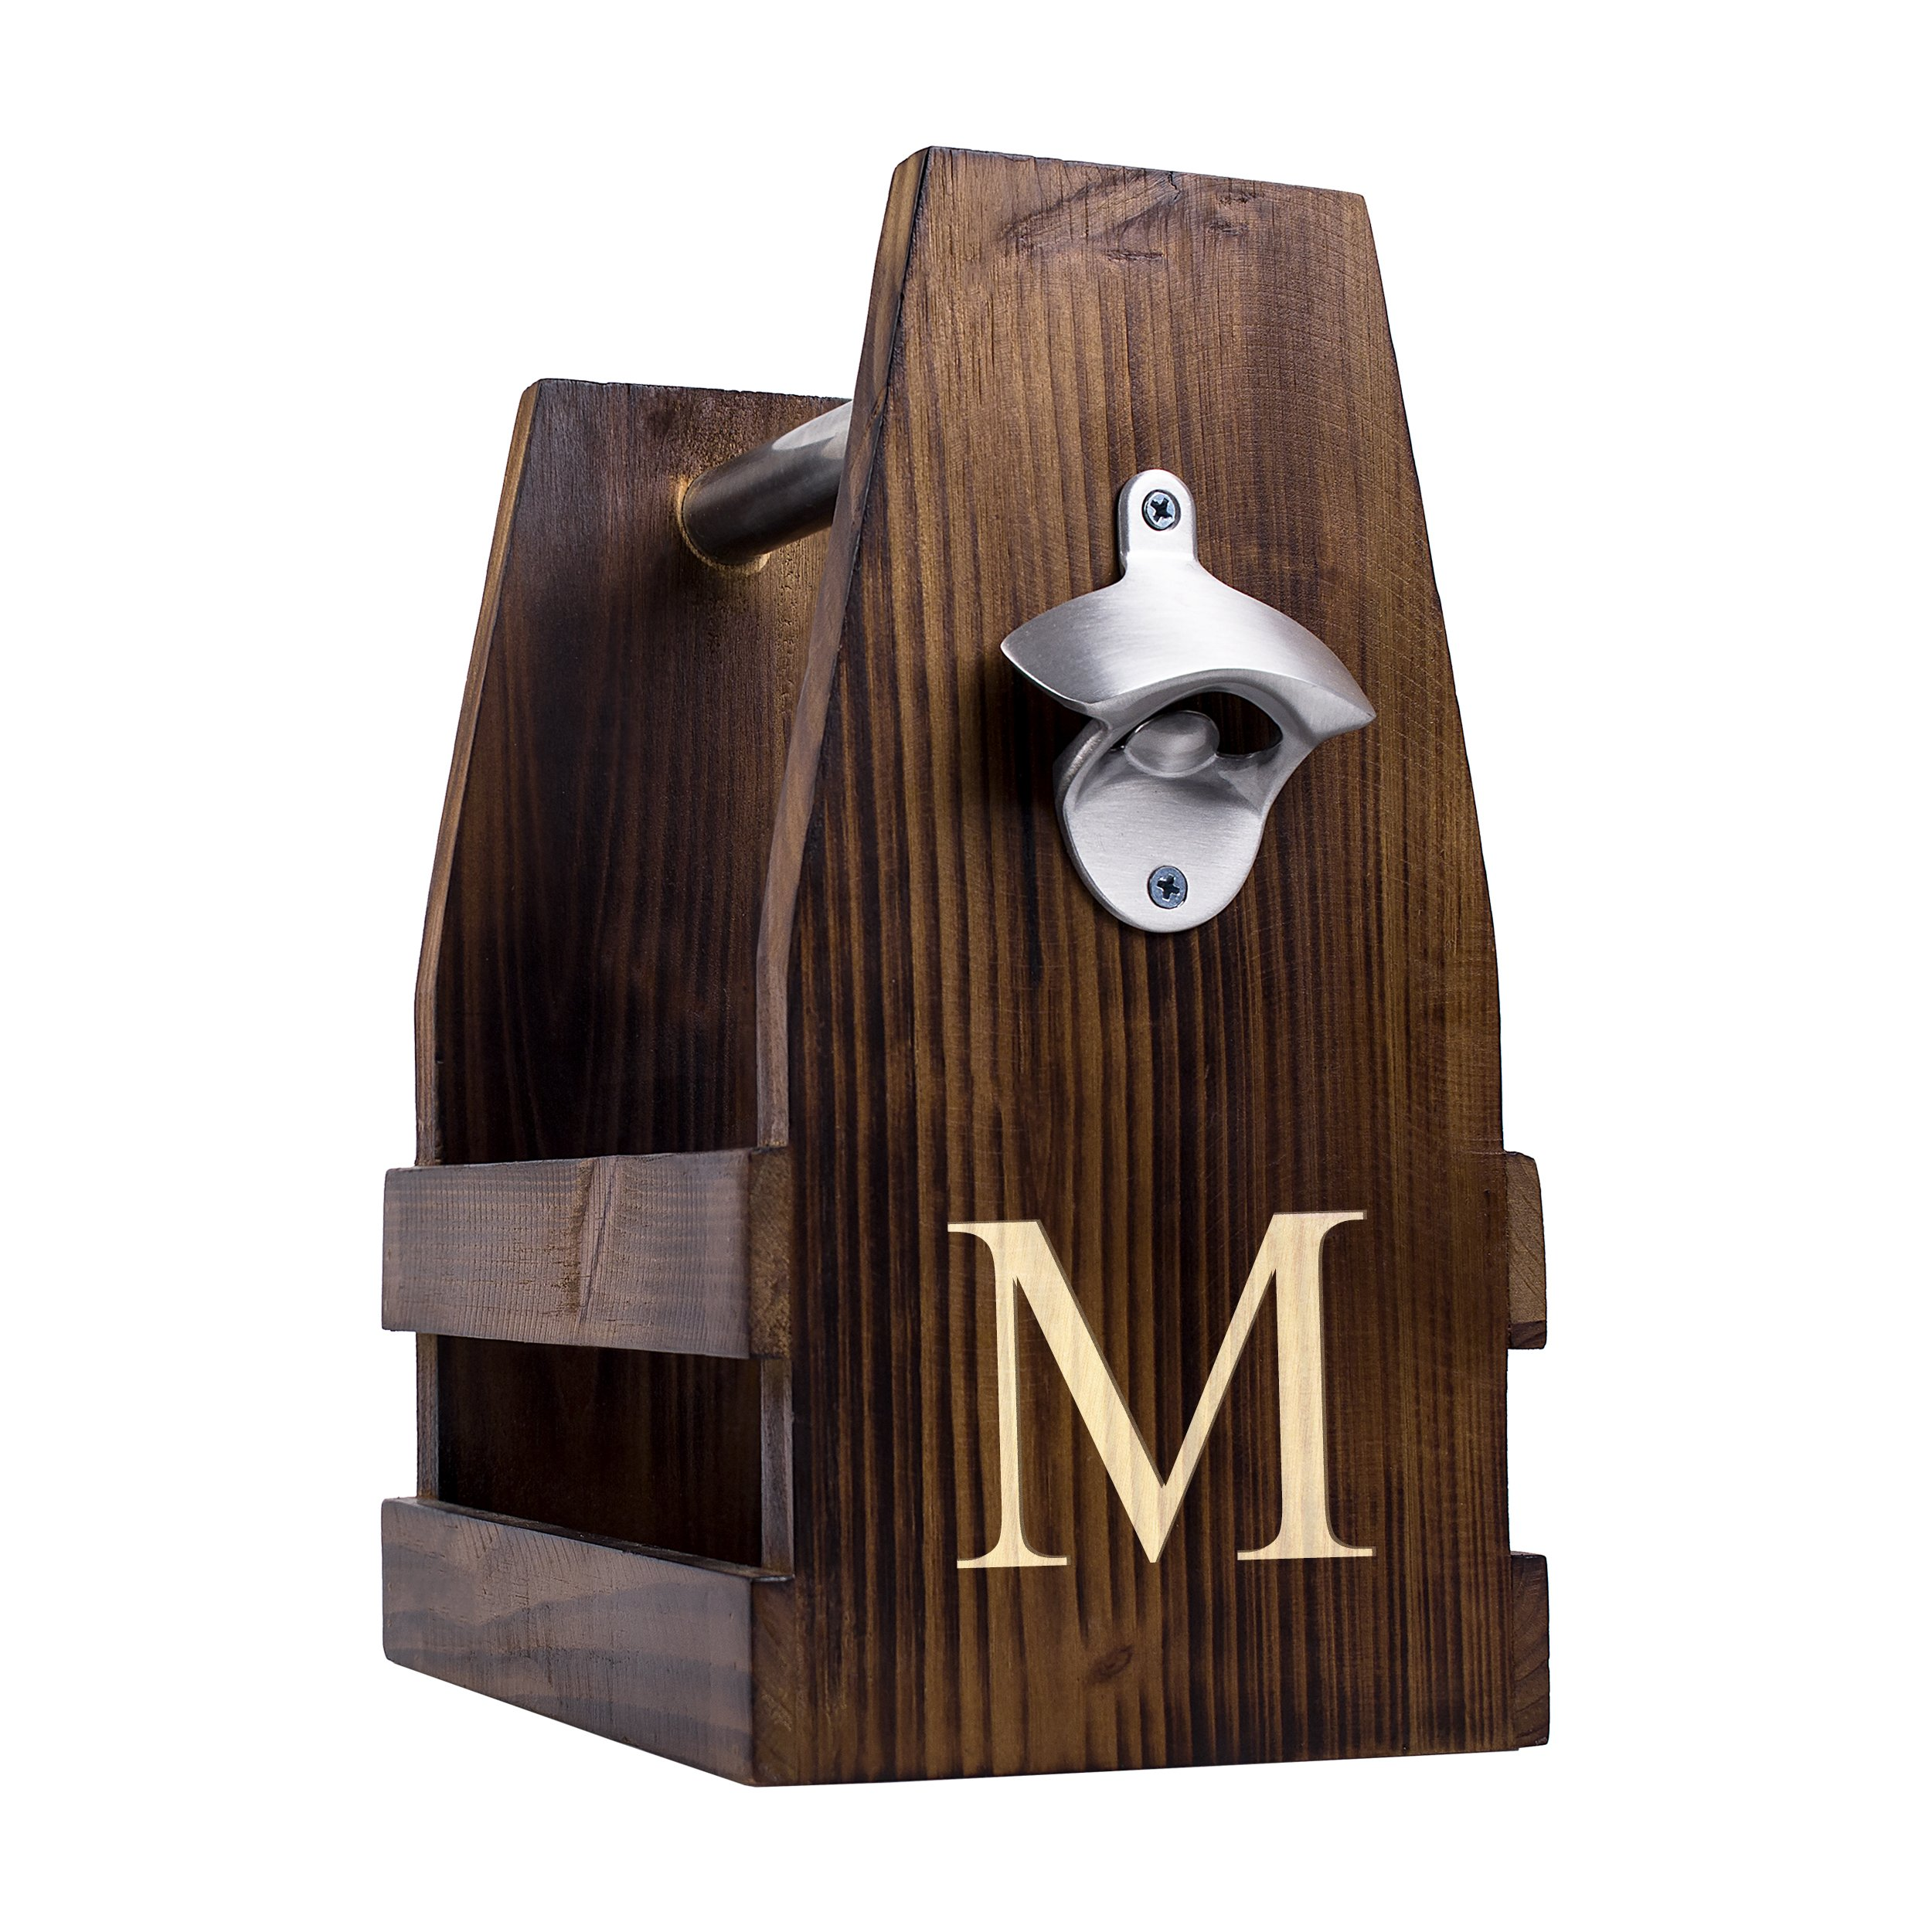 Cathy's Concepts Personalized Rustic Craft Beer Carrier with Bottle Opener, Letter M by Cathy's Concepts (Image #1)